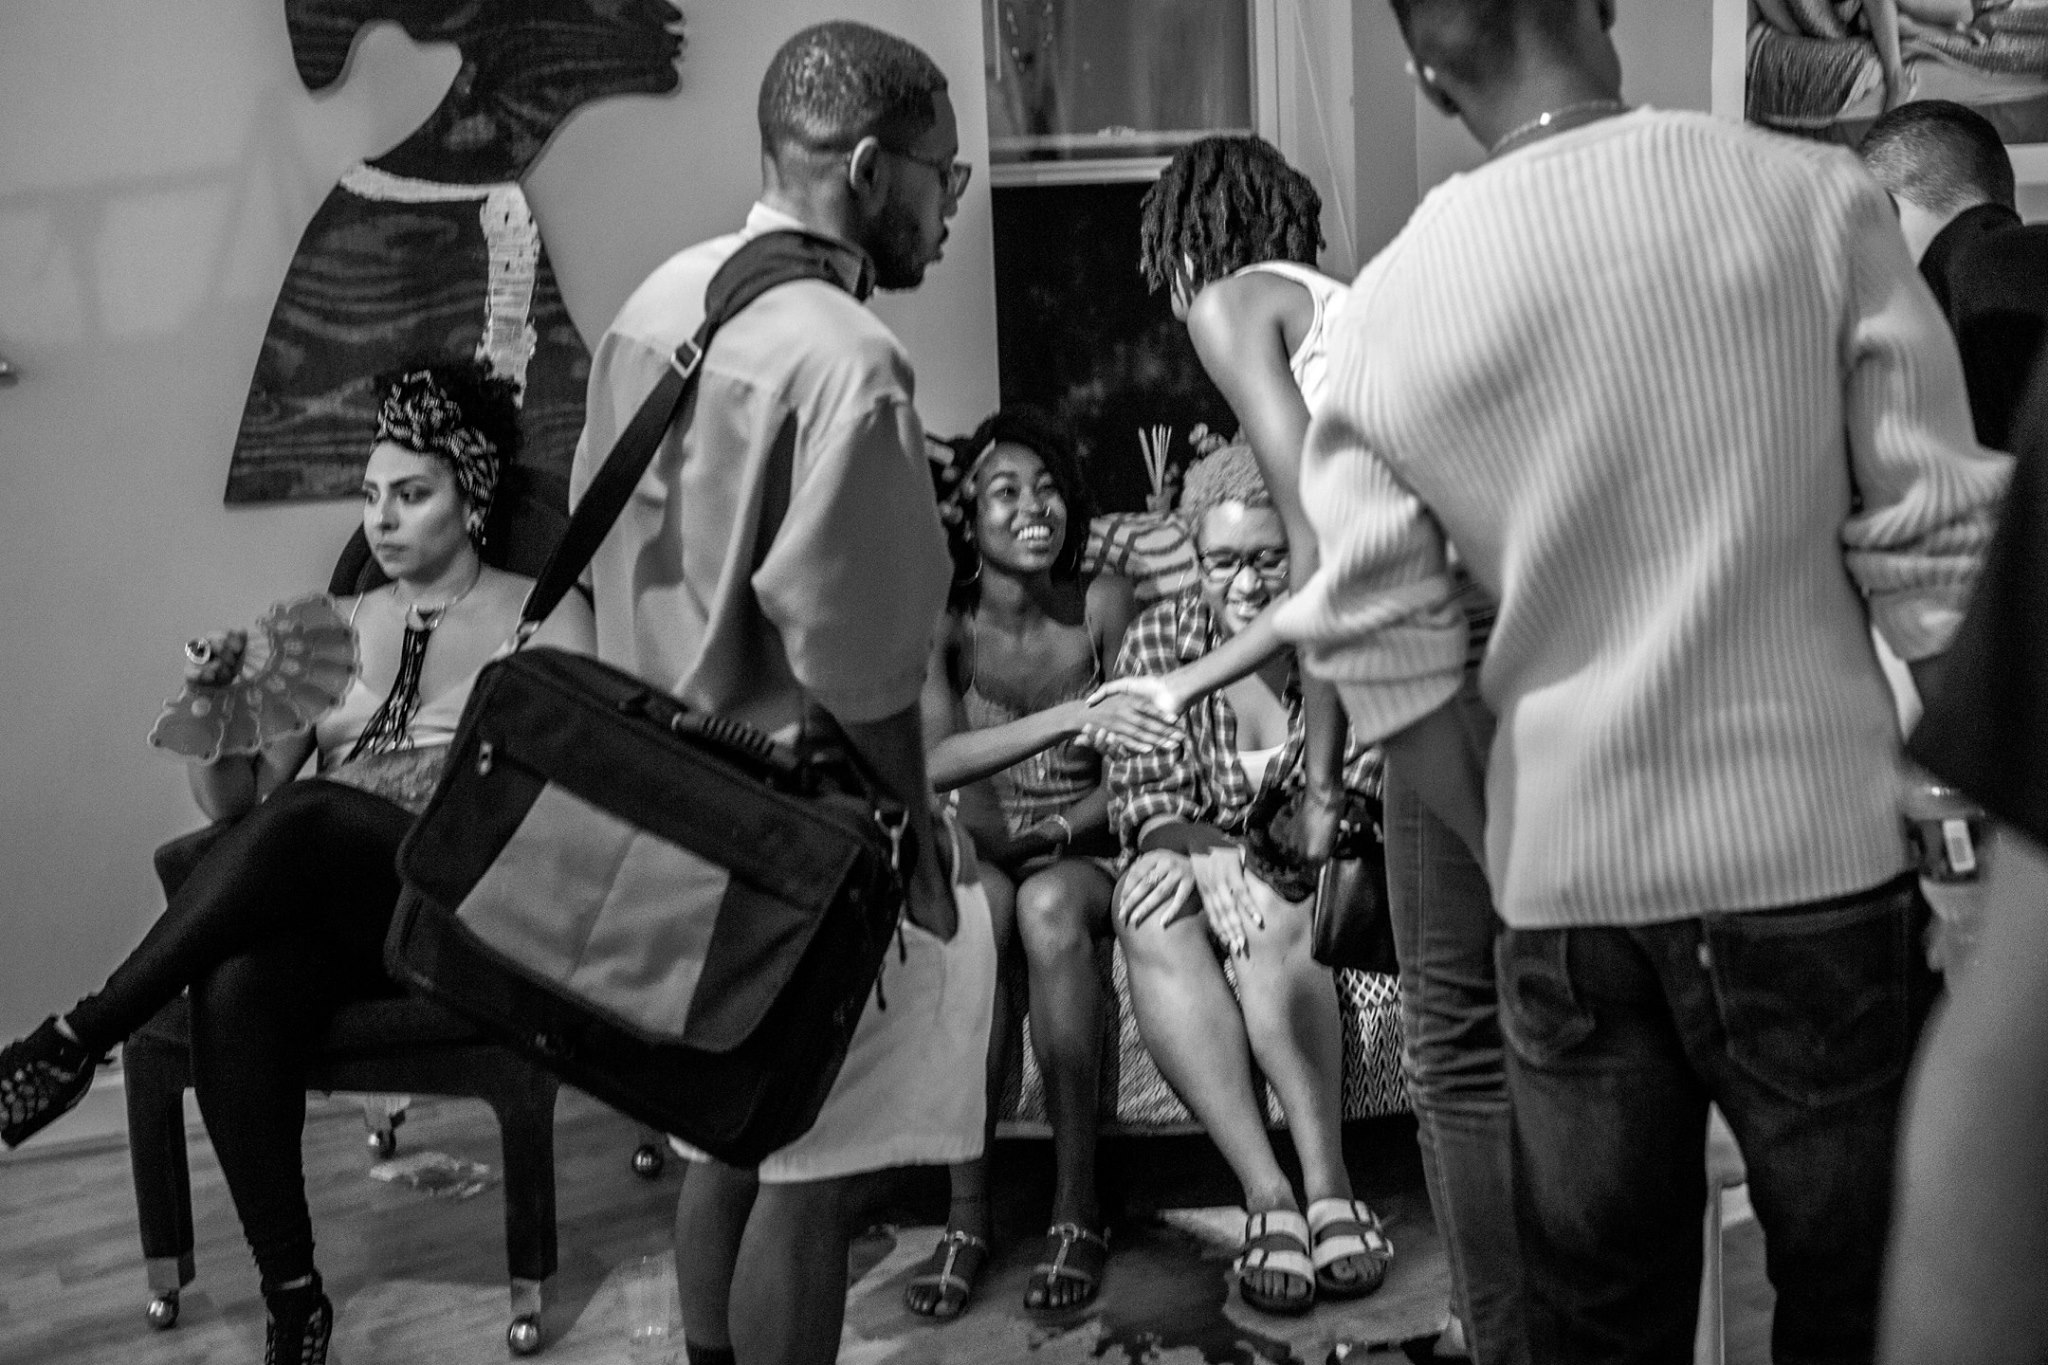 photo by @tonyhitchcock